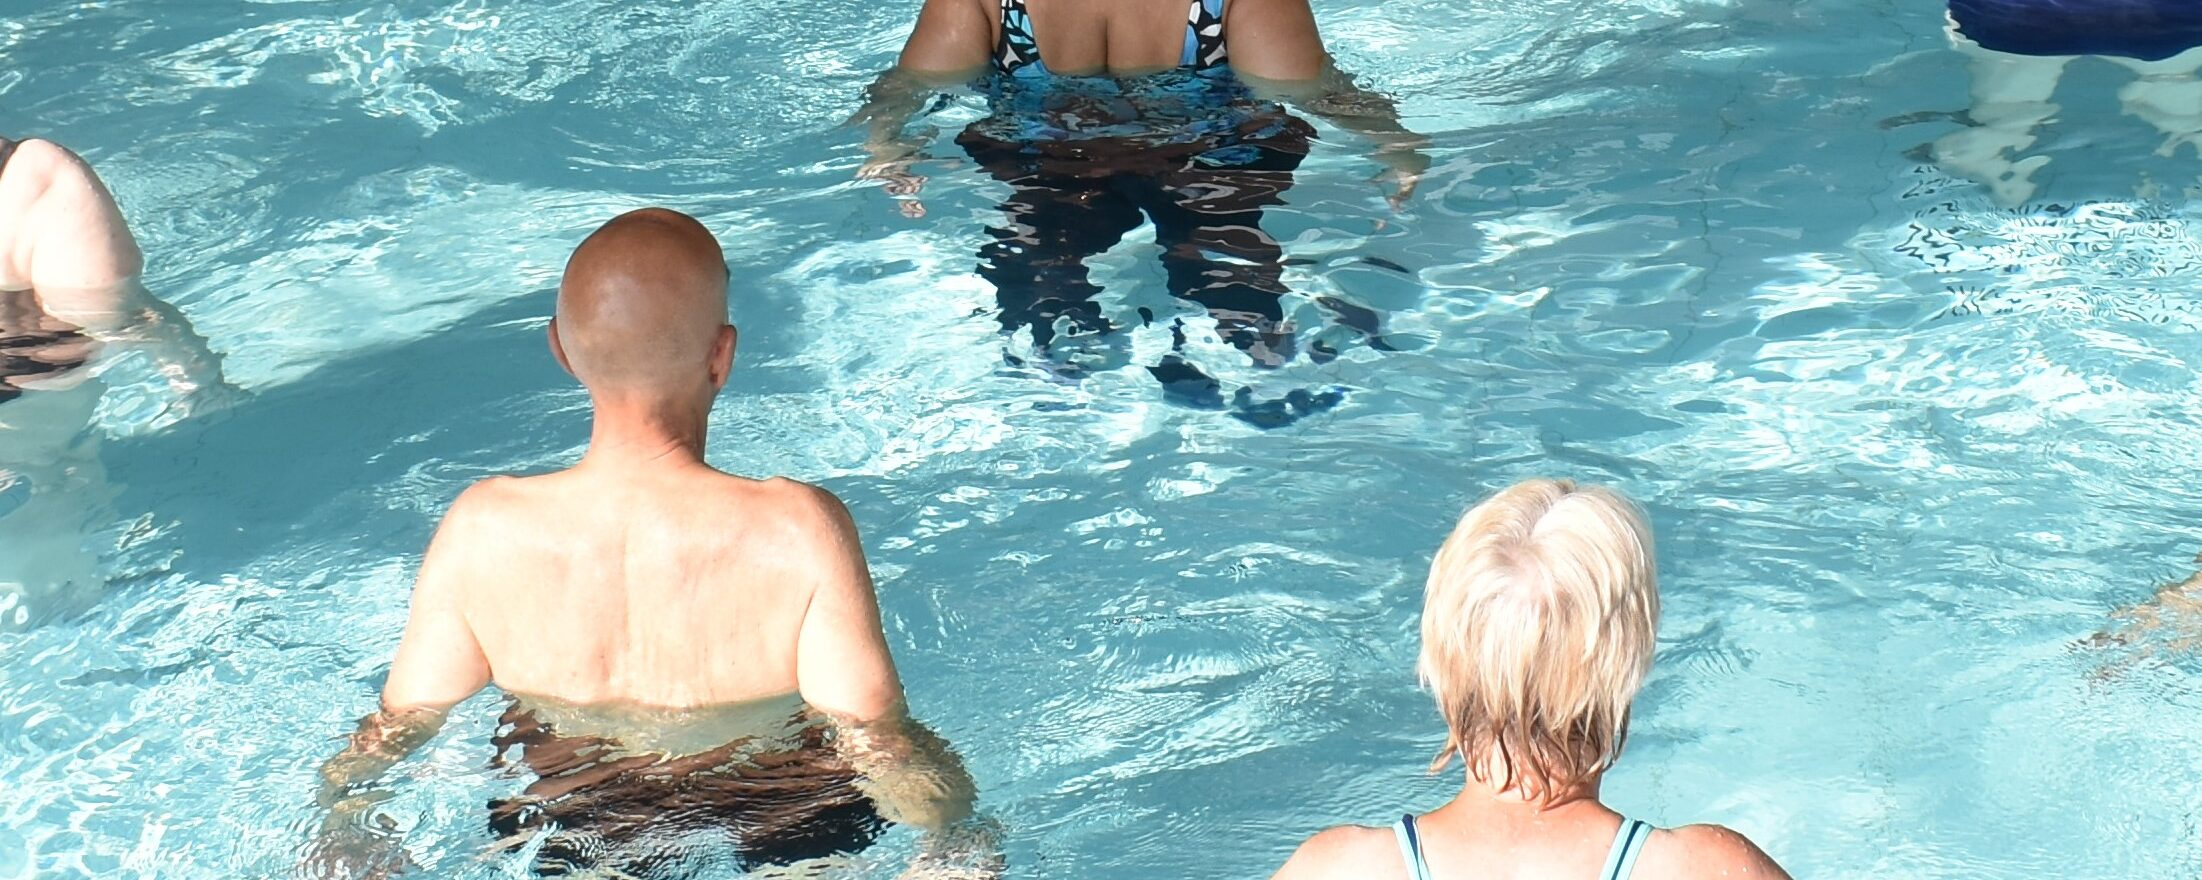 Is aquatic therapy an appropriate option in fall risk management?